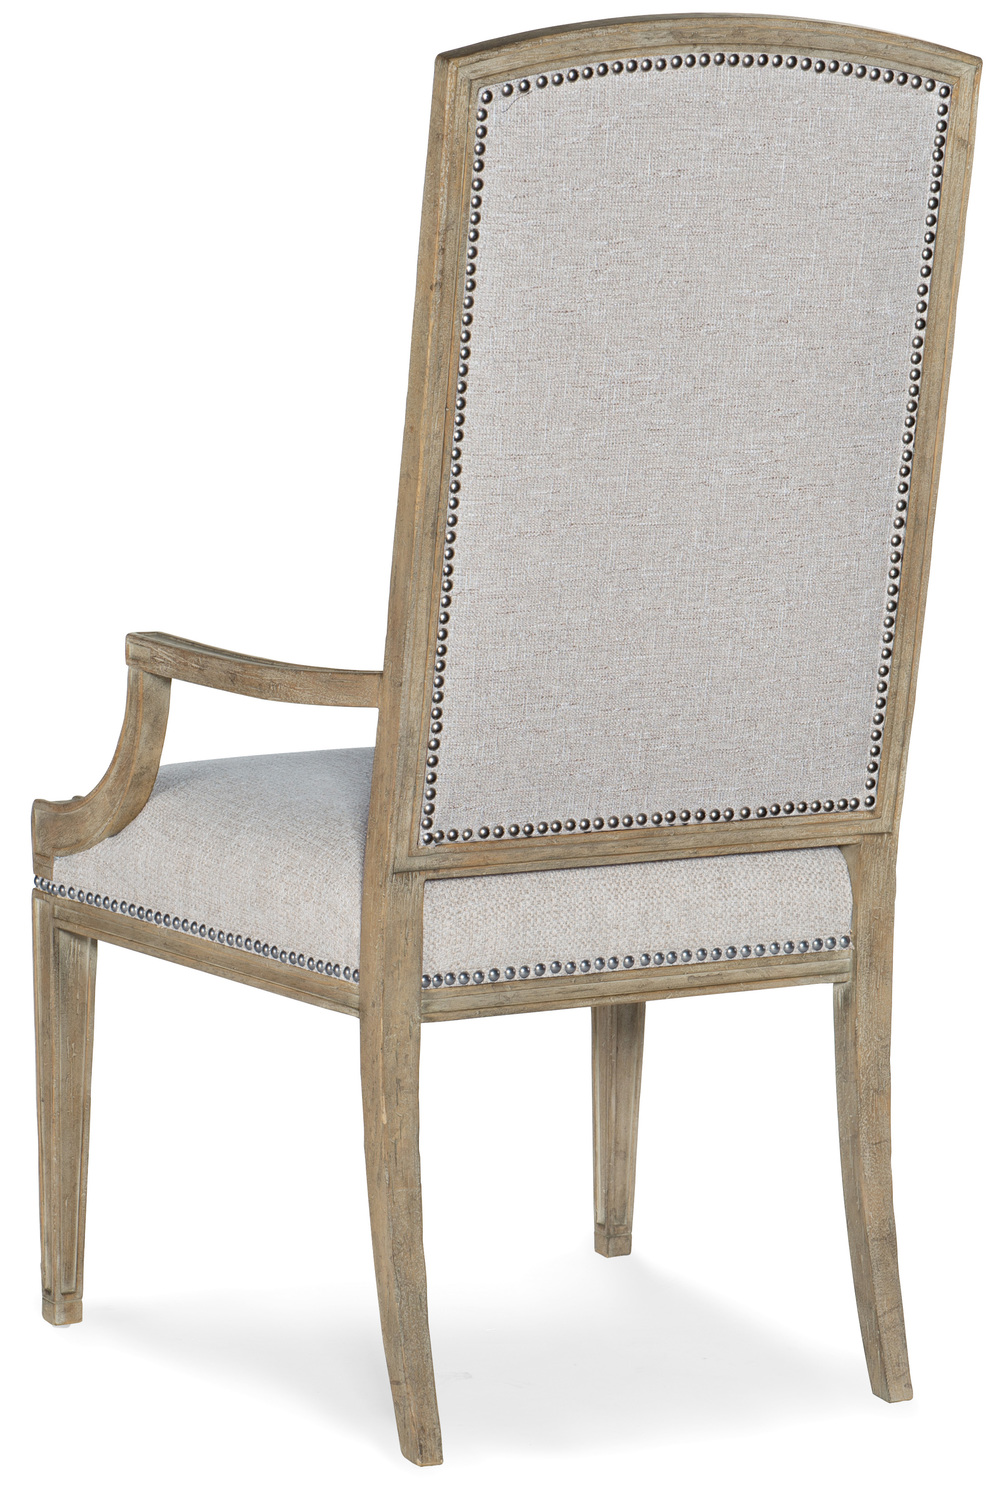 Hooker Furniture - Arm Chair